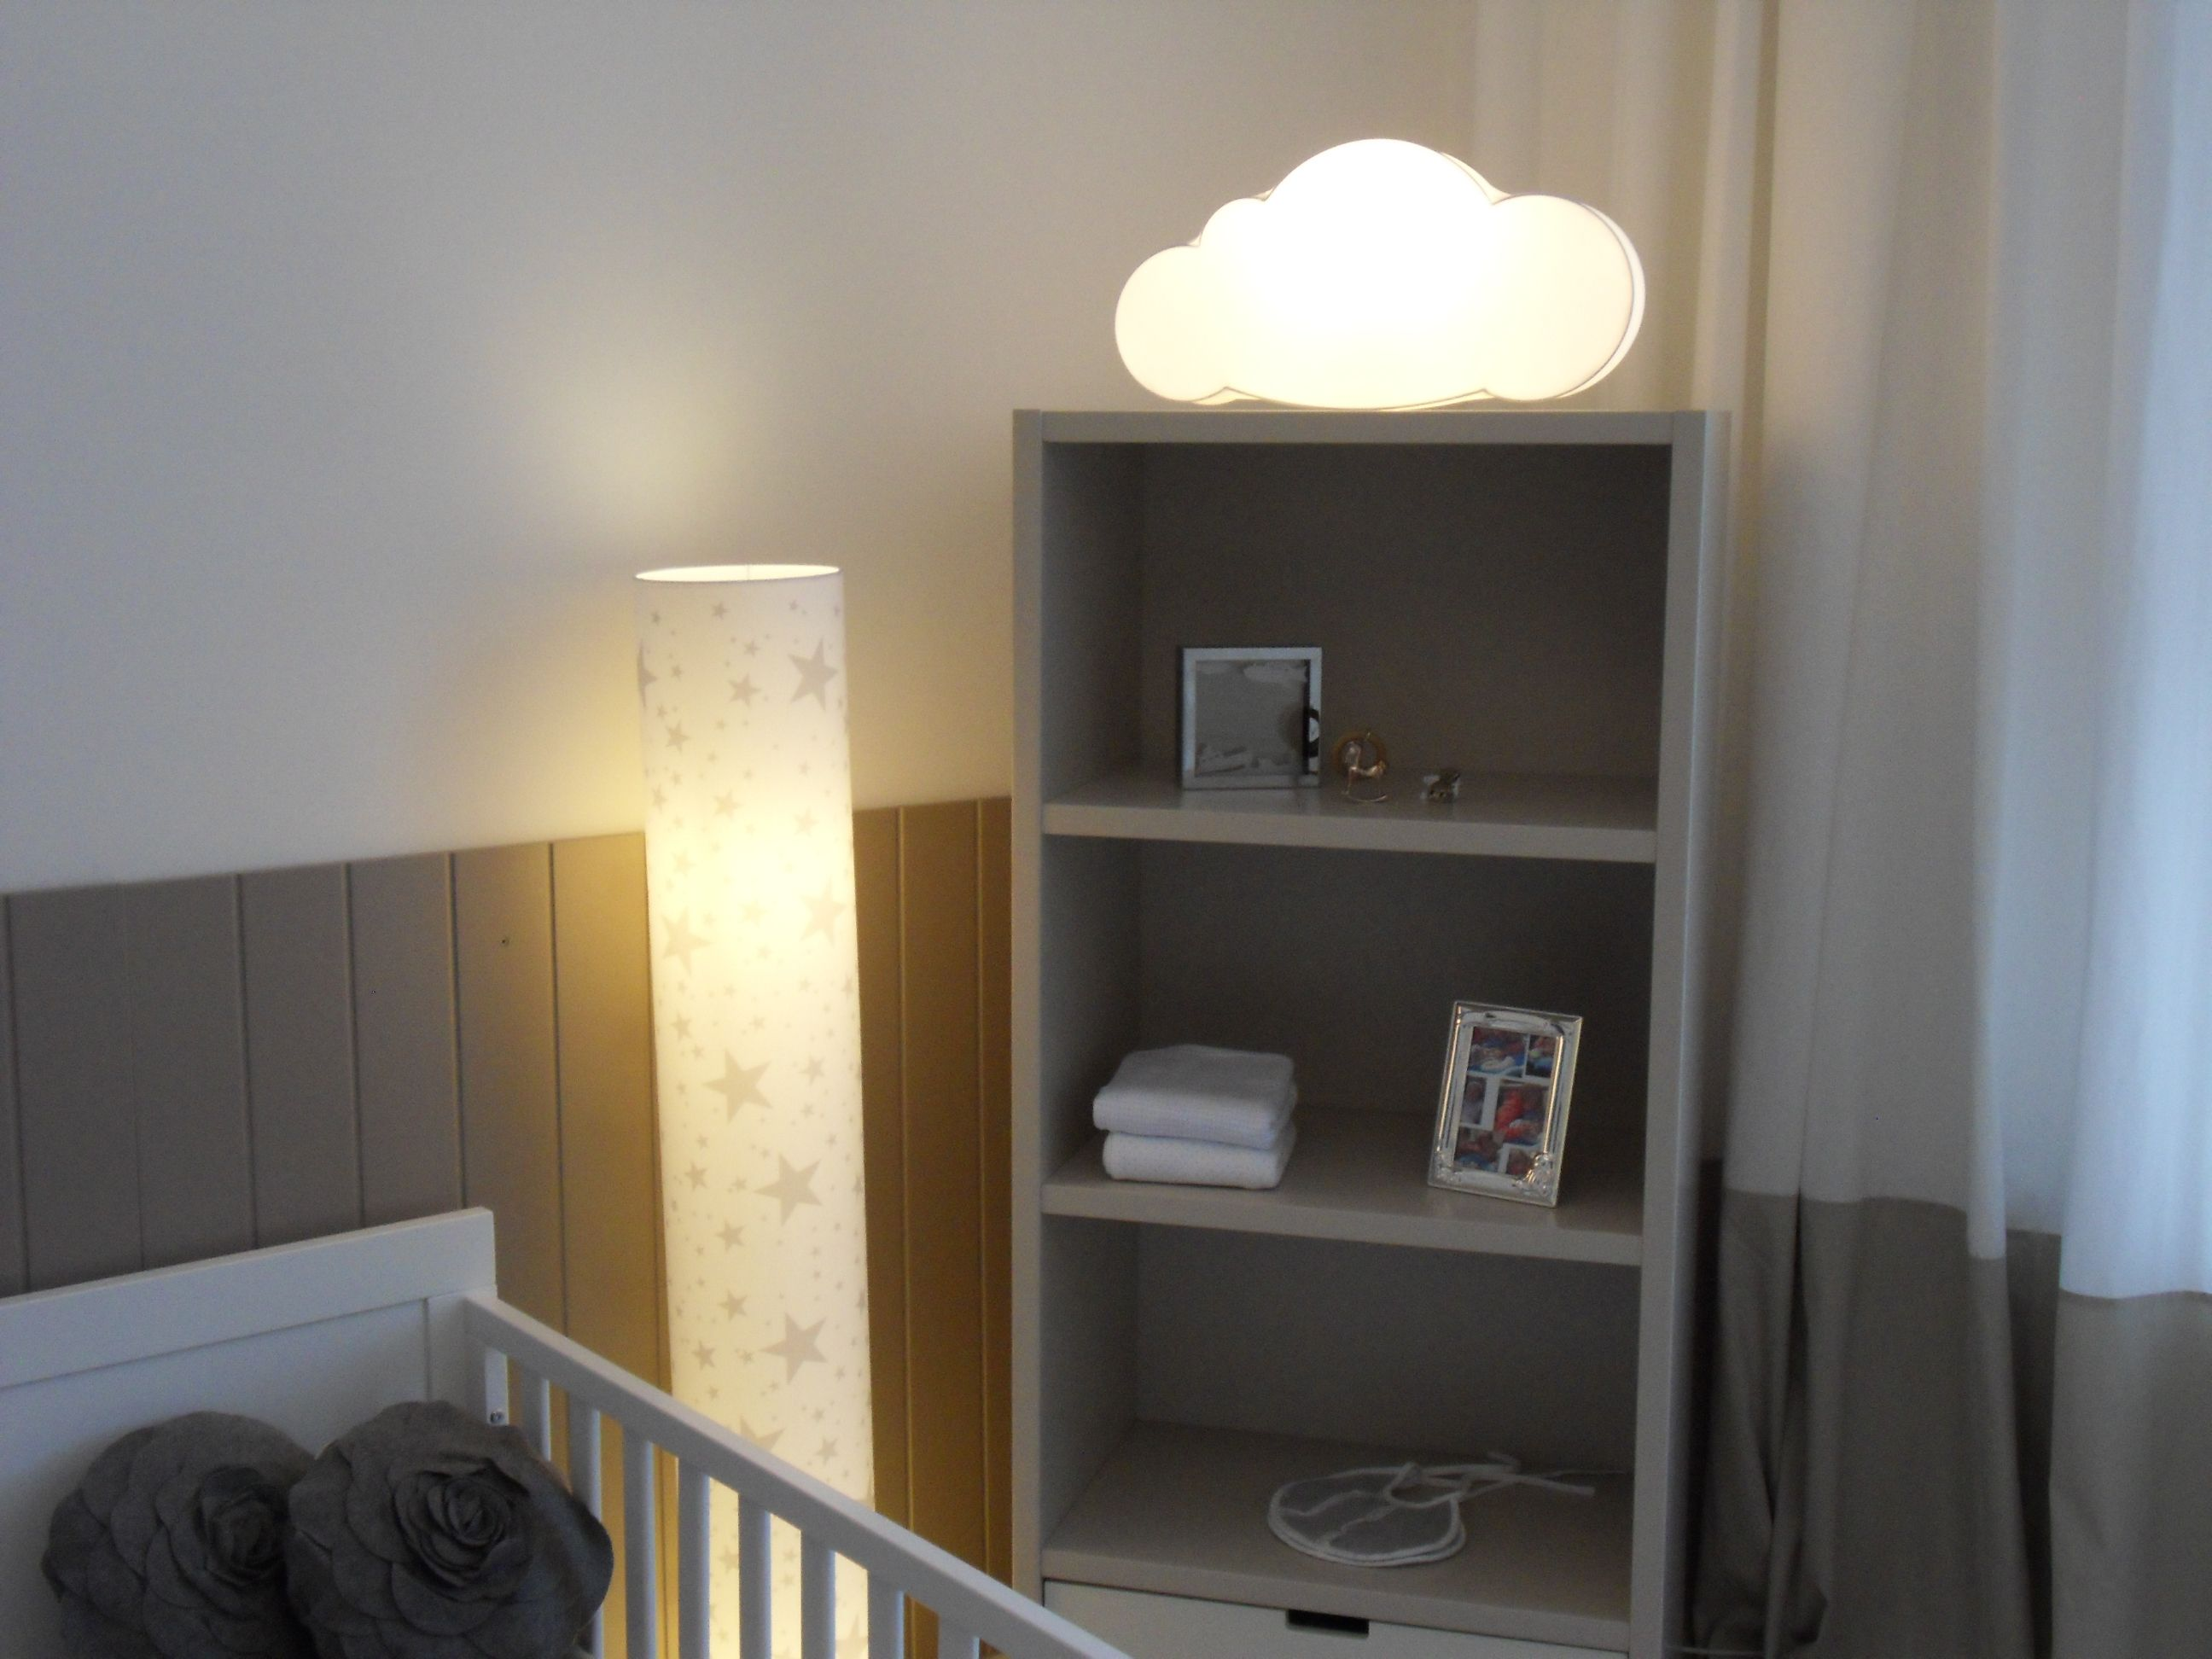 #Kids Lighting, # Lamp Kinderkamer, # Lamp Babykamer, # Kids bedroom lights Lamps made by Bacon & Apples, available at www.noonos.com